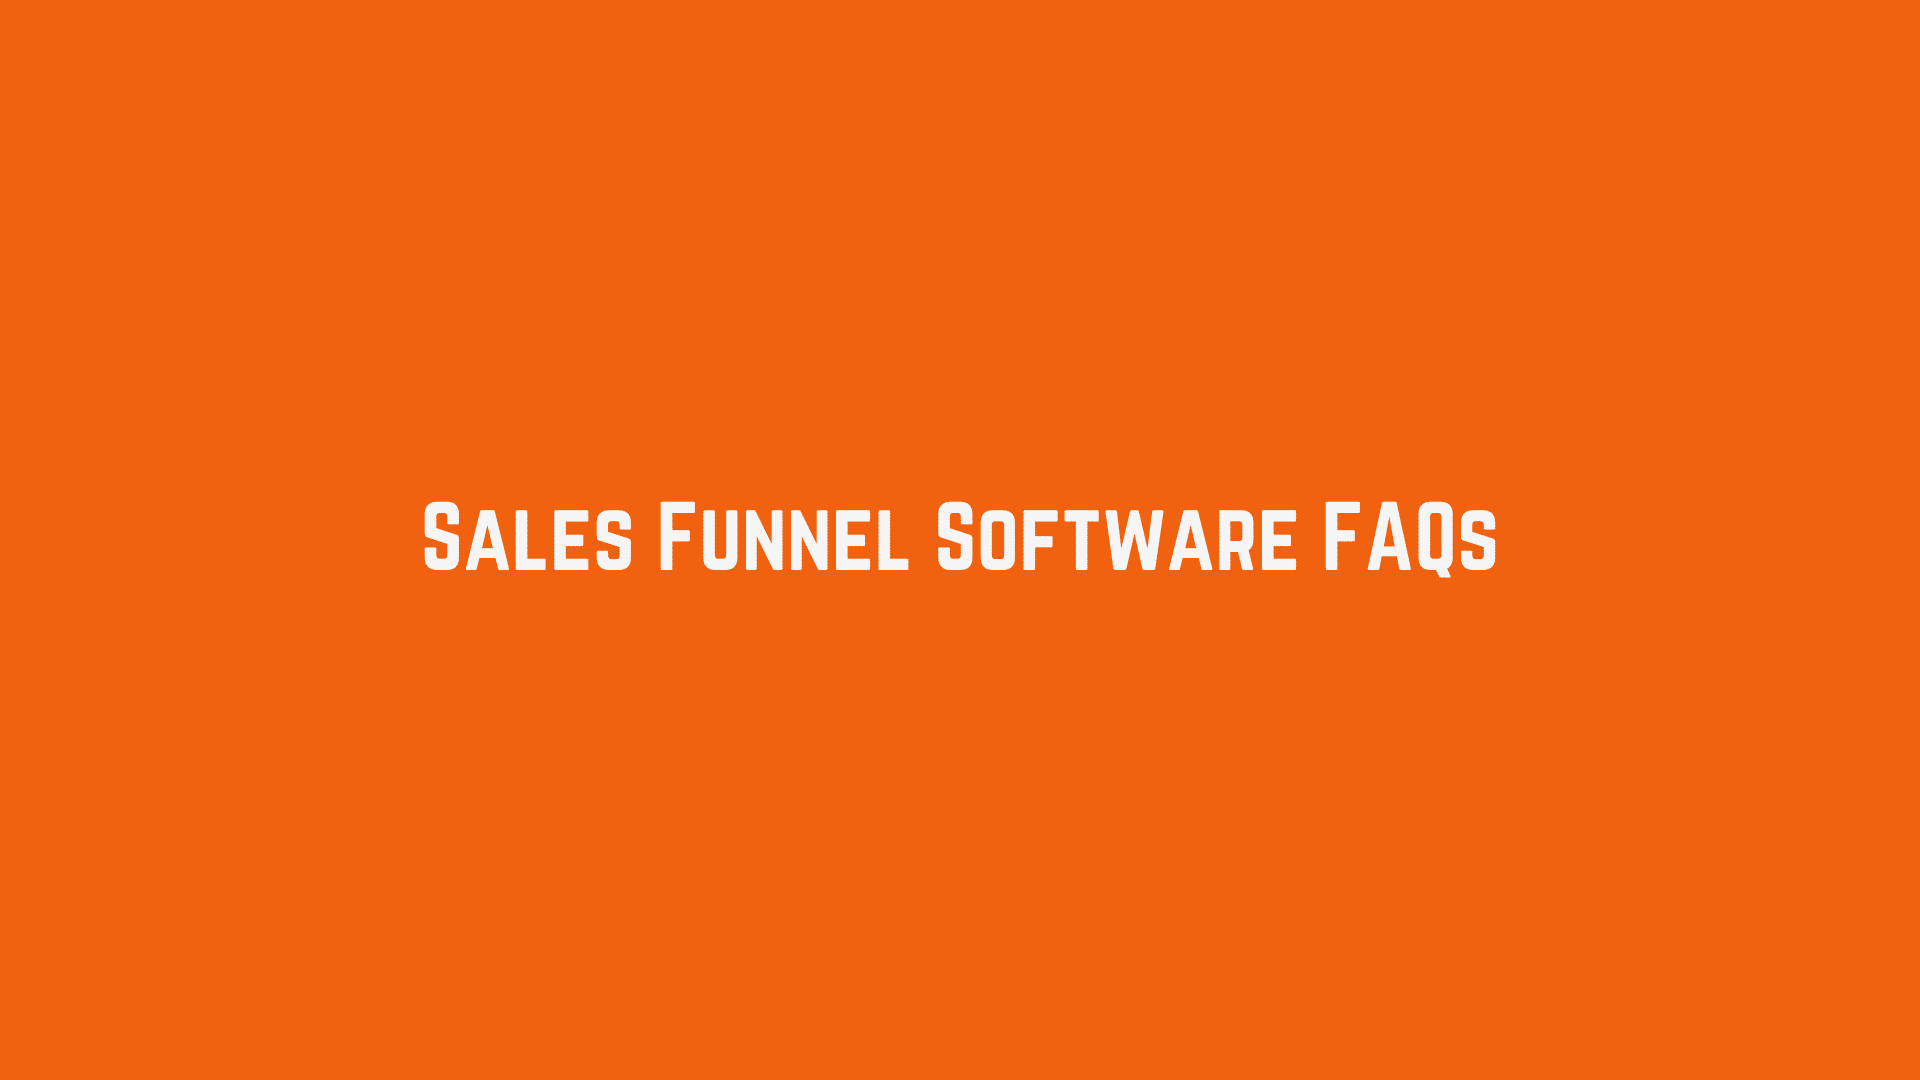 Sales Funnel Software FAQs